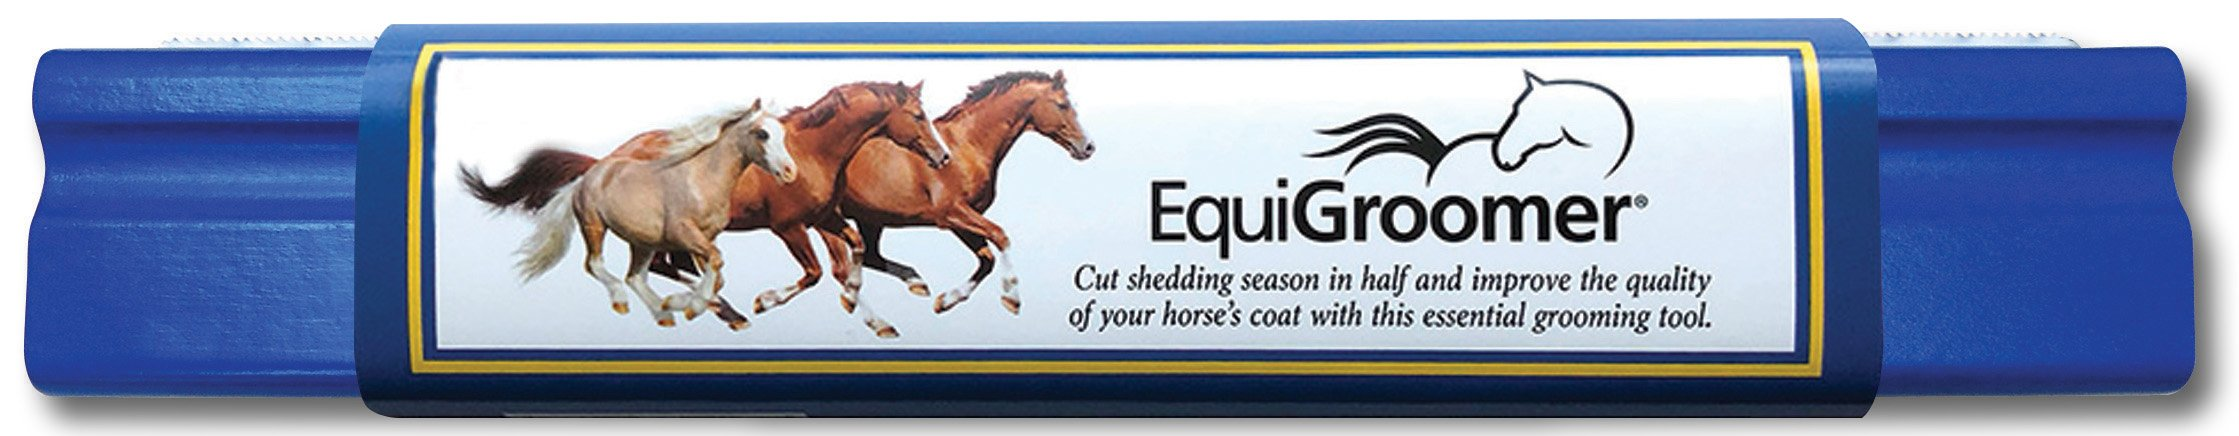 EquiGroomer - Large 9'' Grooming / Shedding / Tool for Horses - Blue